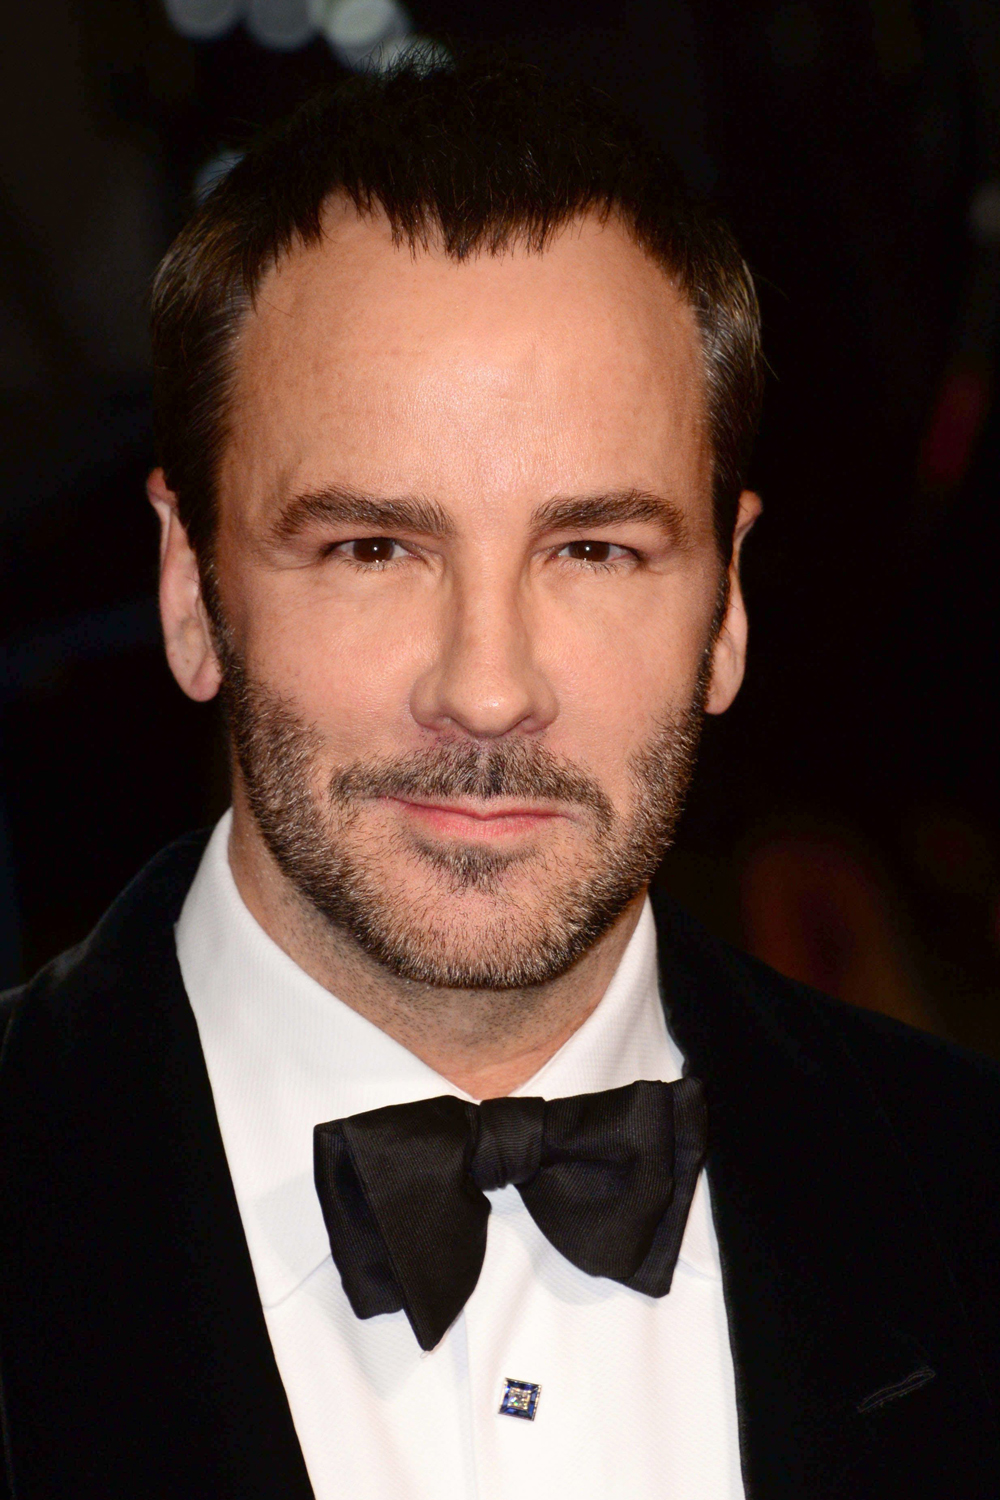 Tom Ford Quotes: The Fashion Designer's Most Outrageous